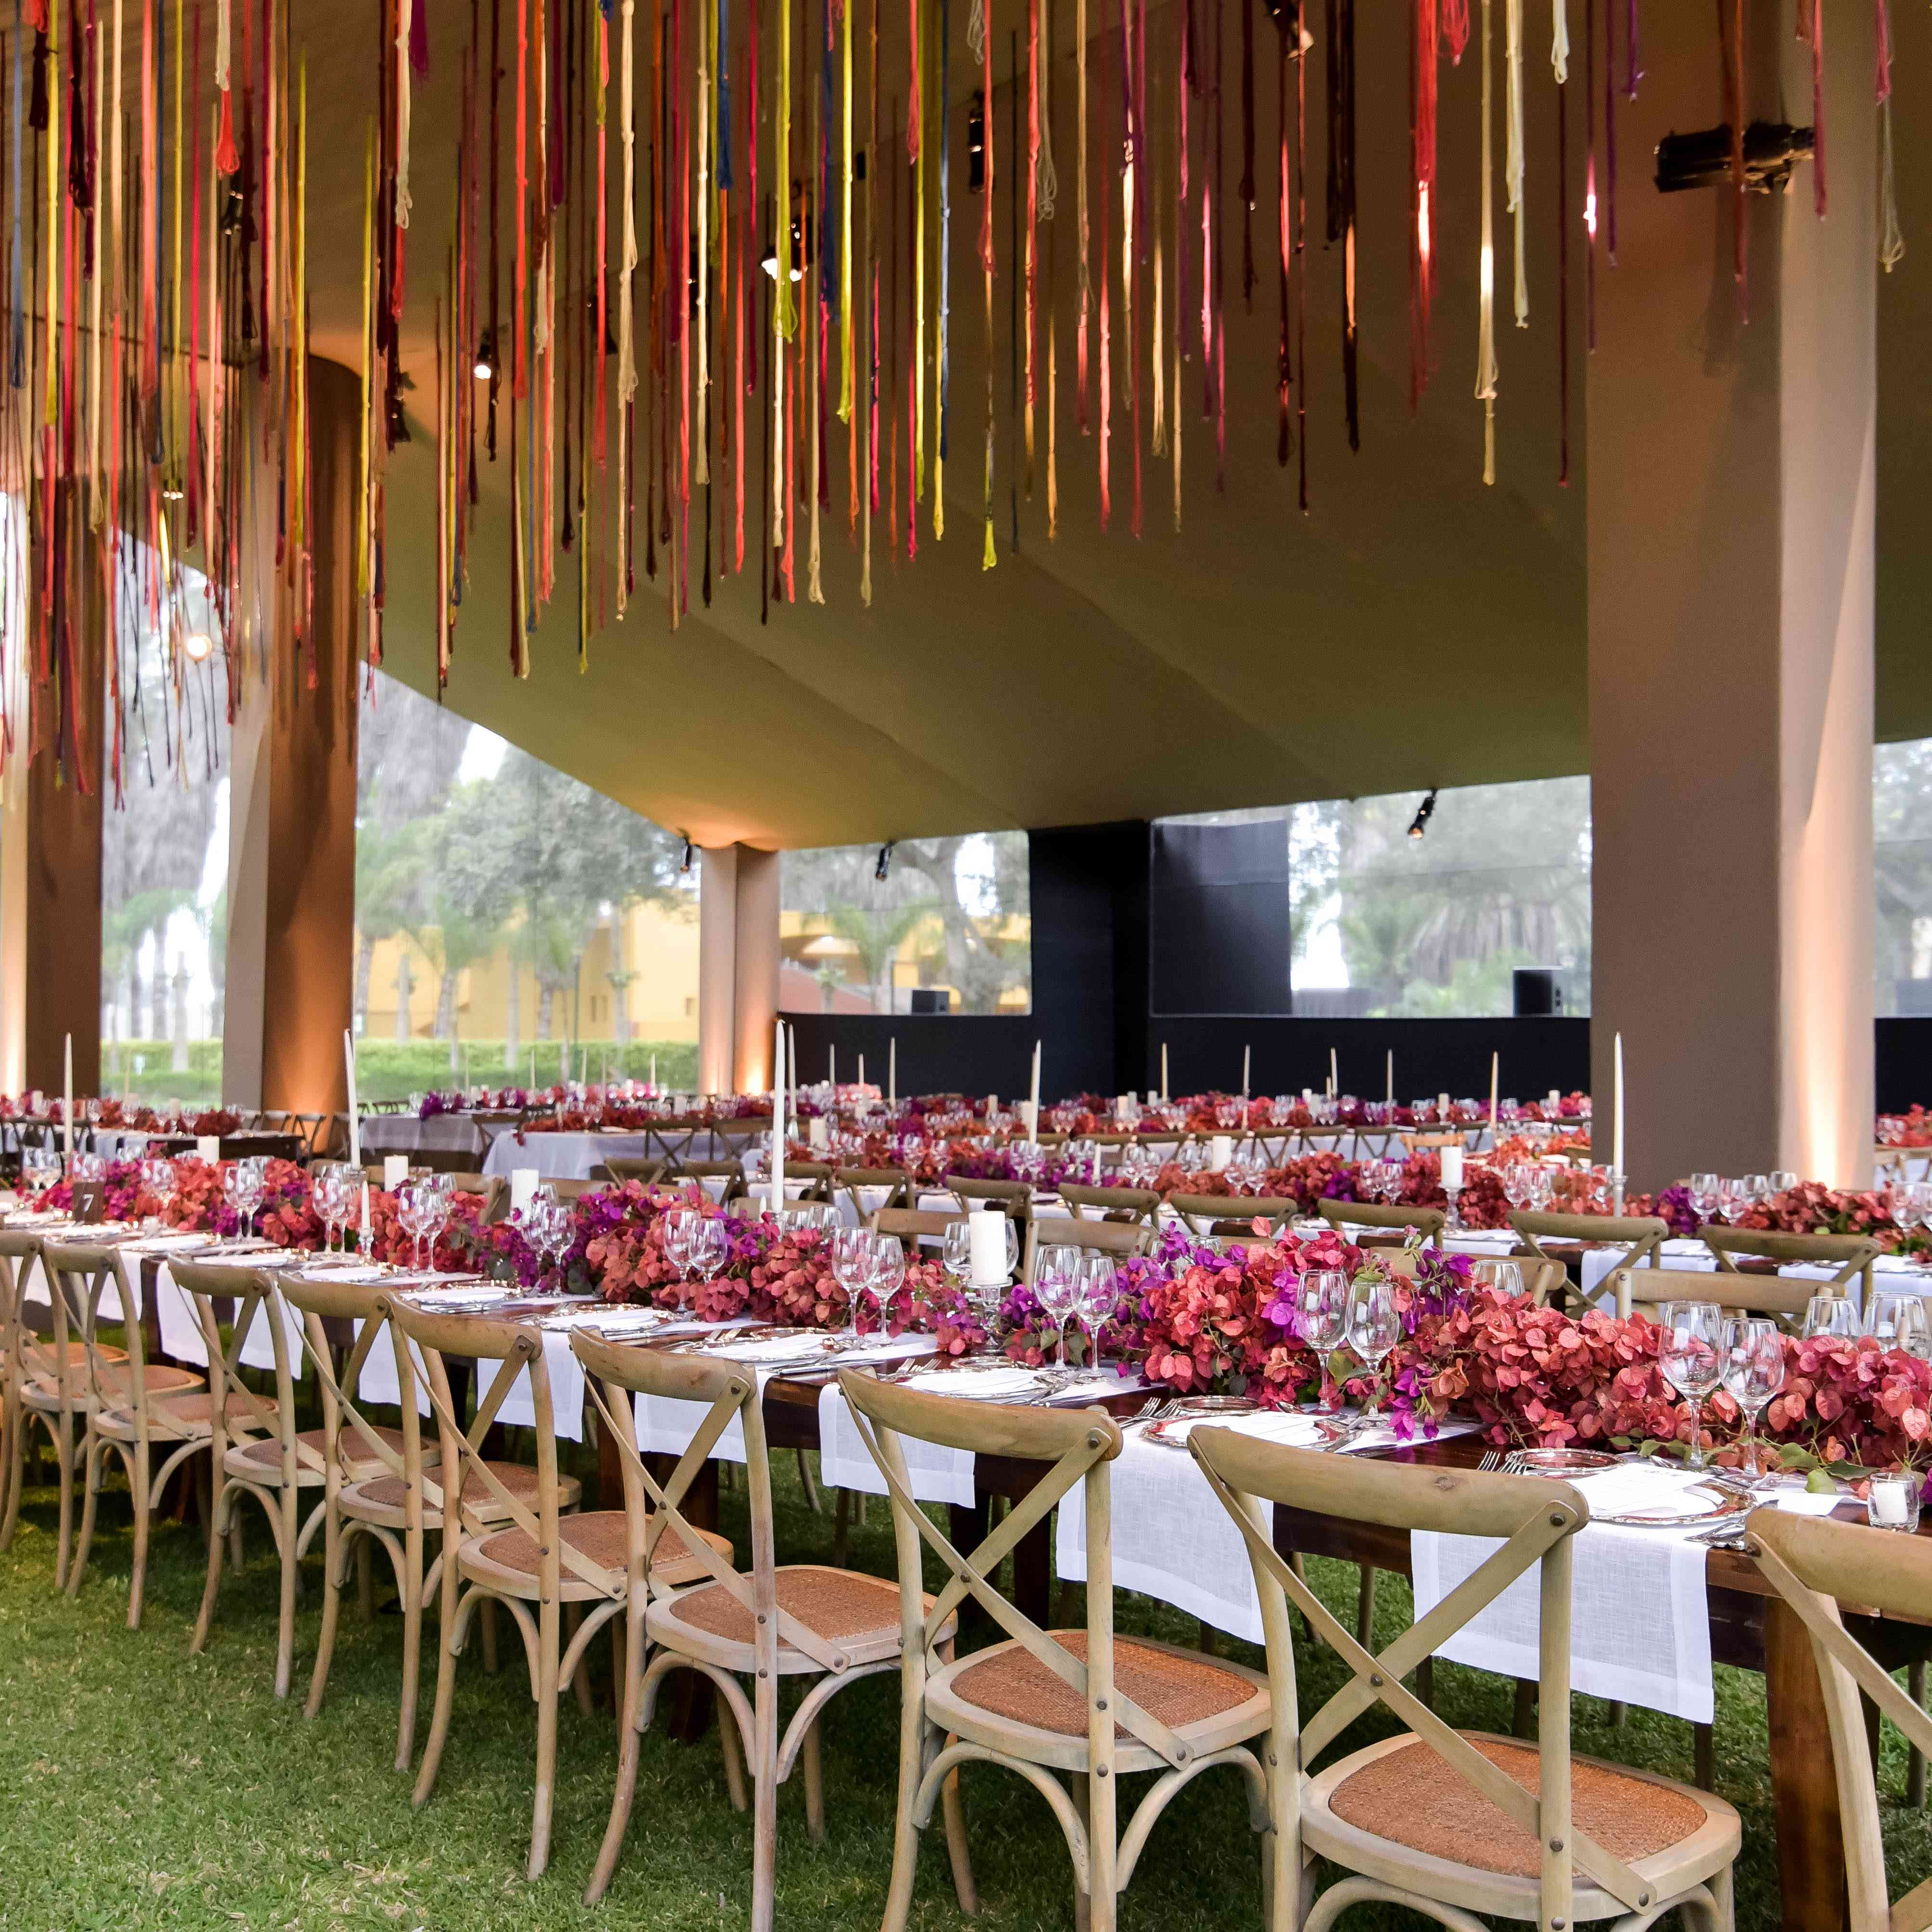 <p>Reception dinner table setting</p><br><br>